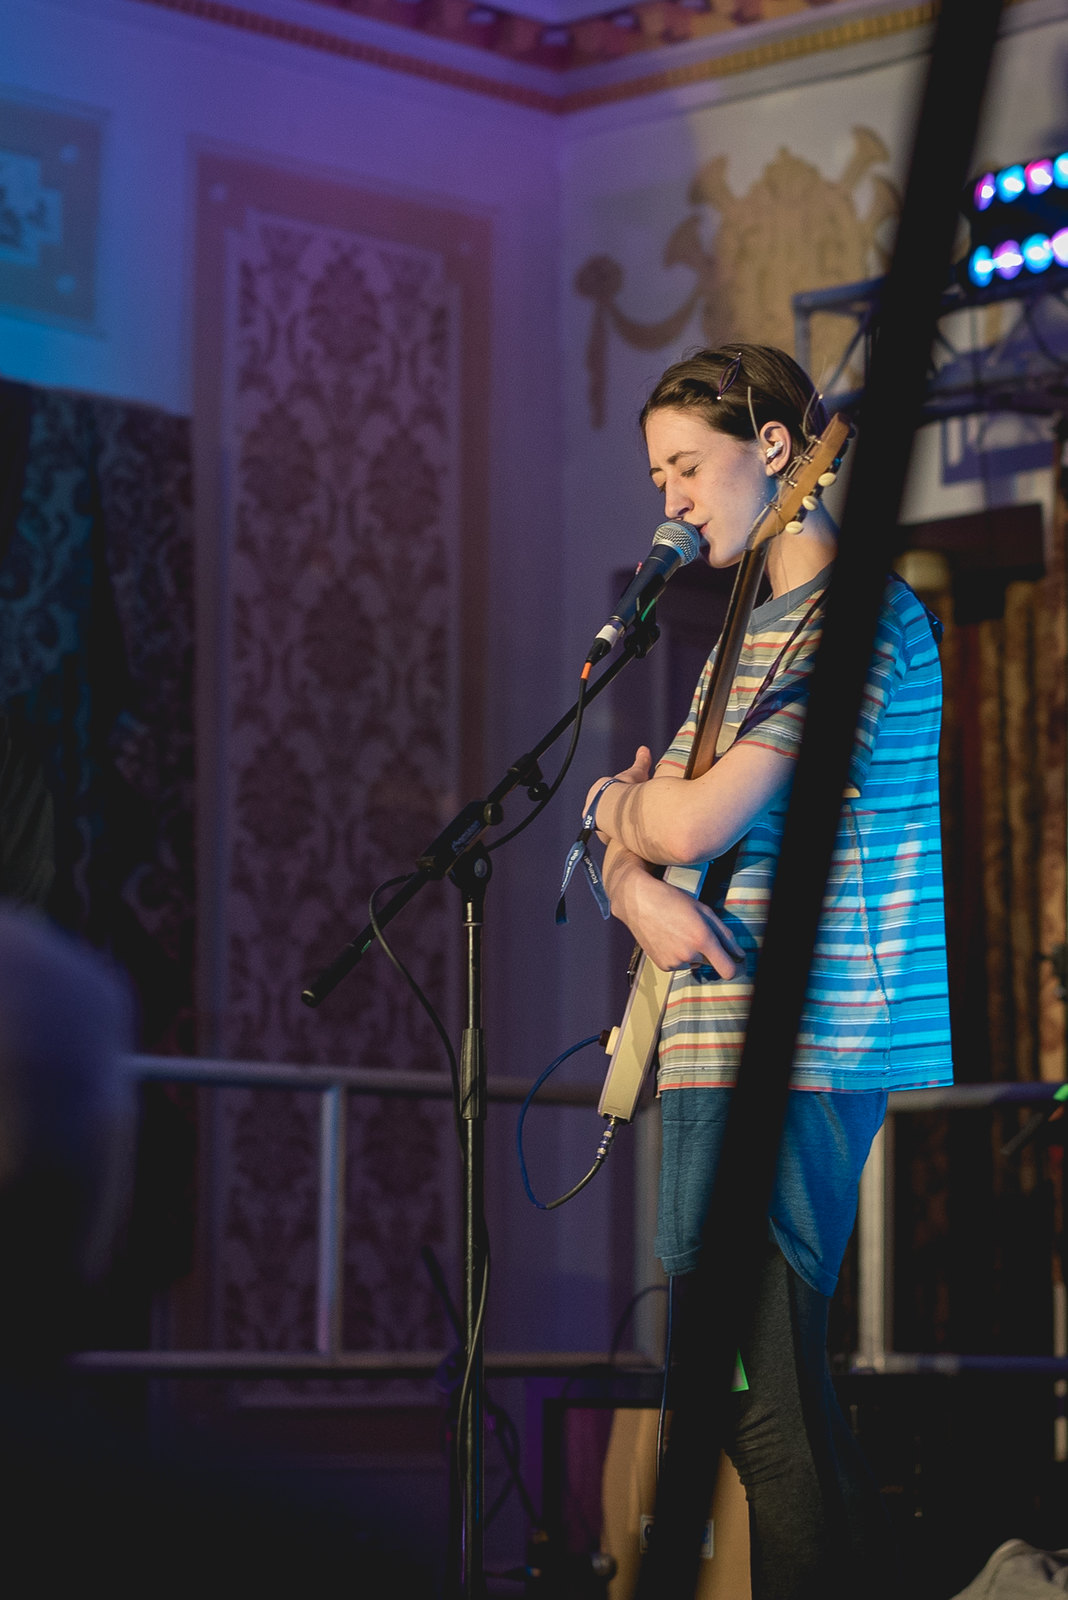 The Great Escape 2016: Frankie Cosmos